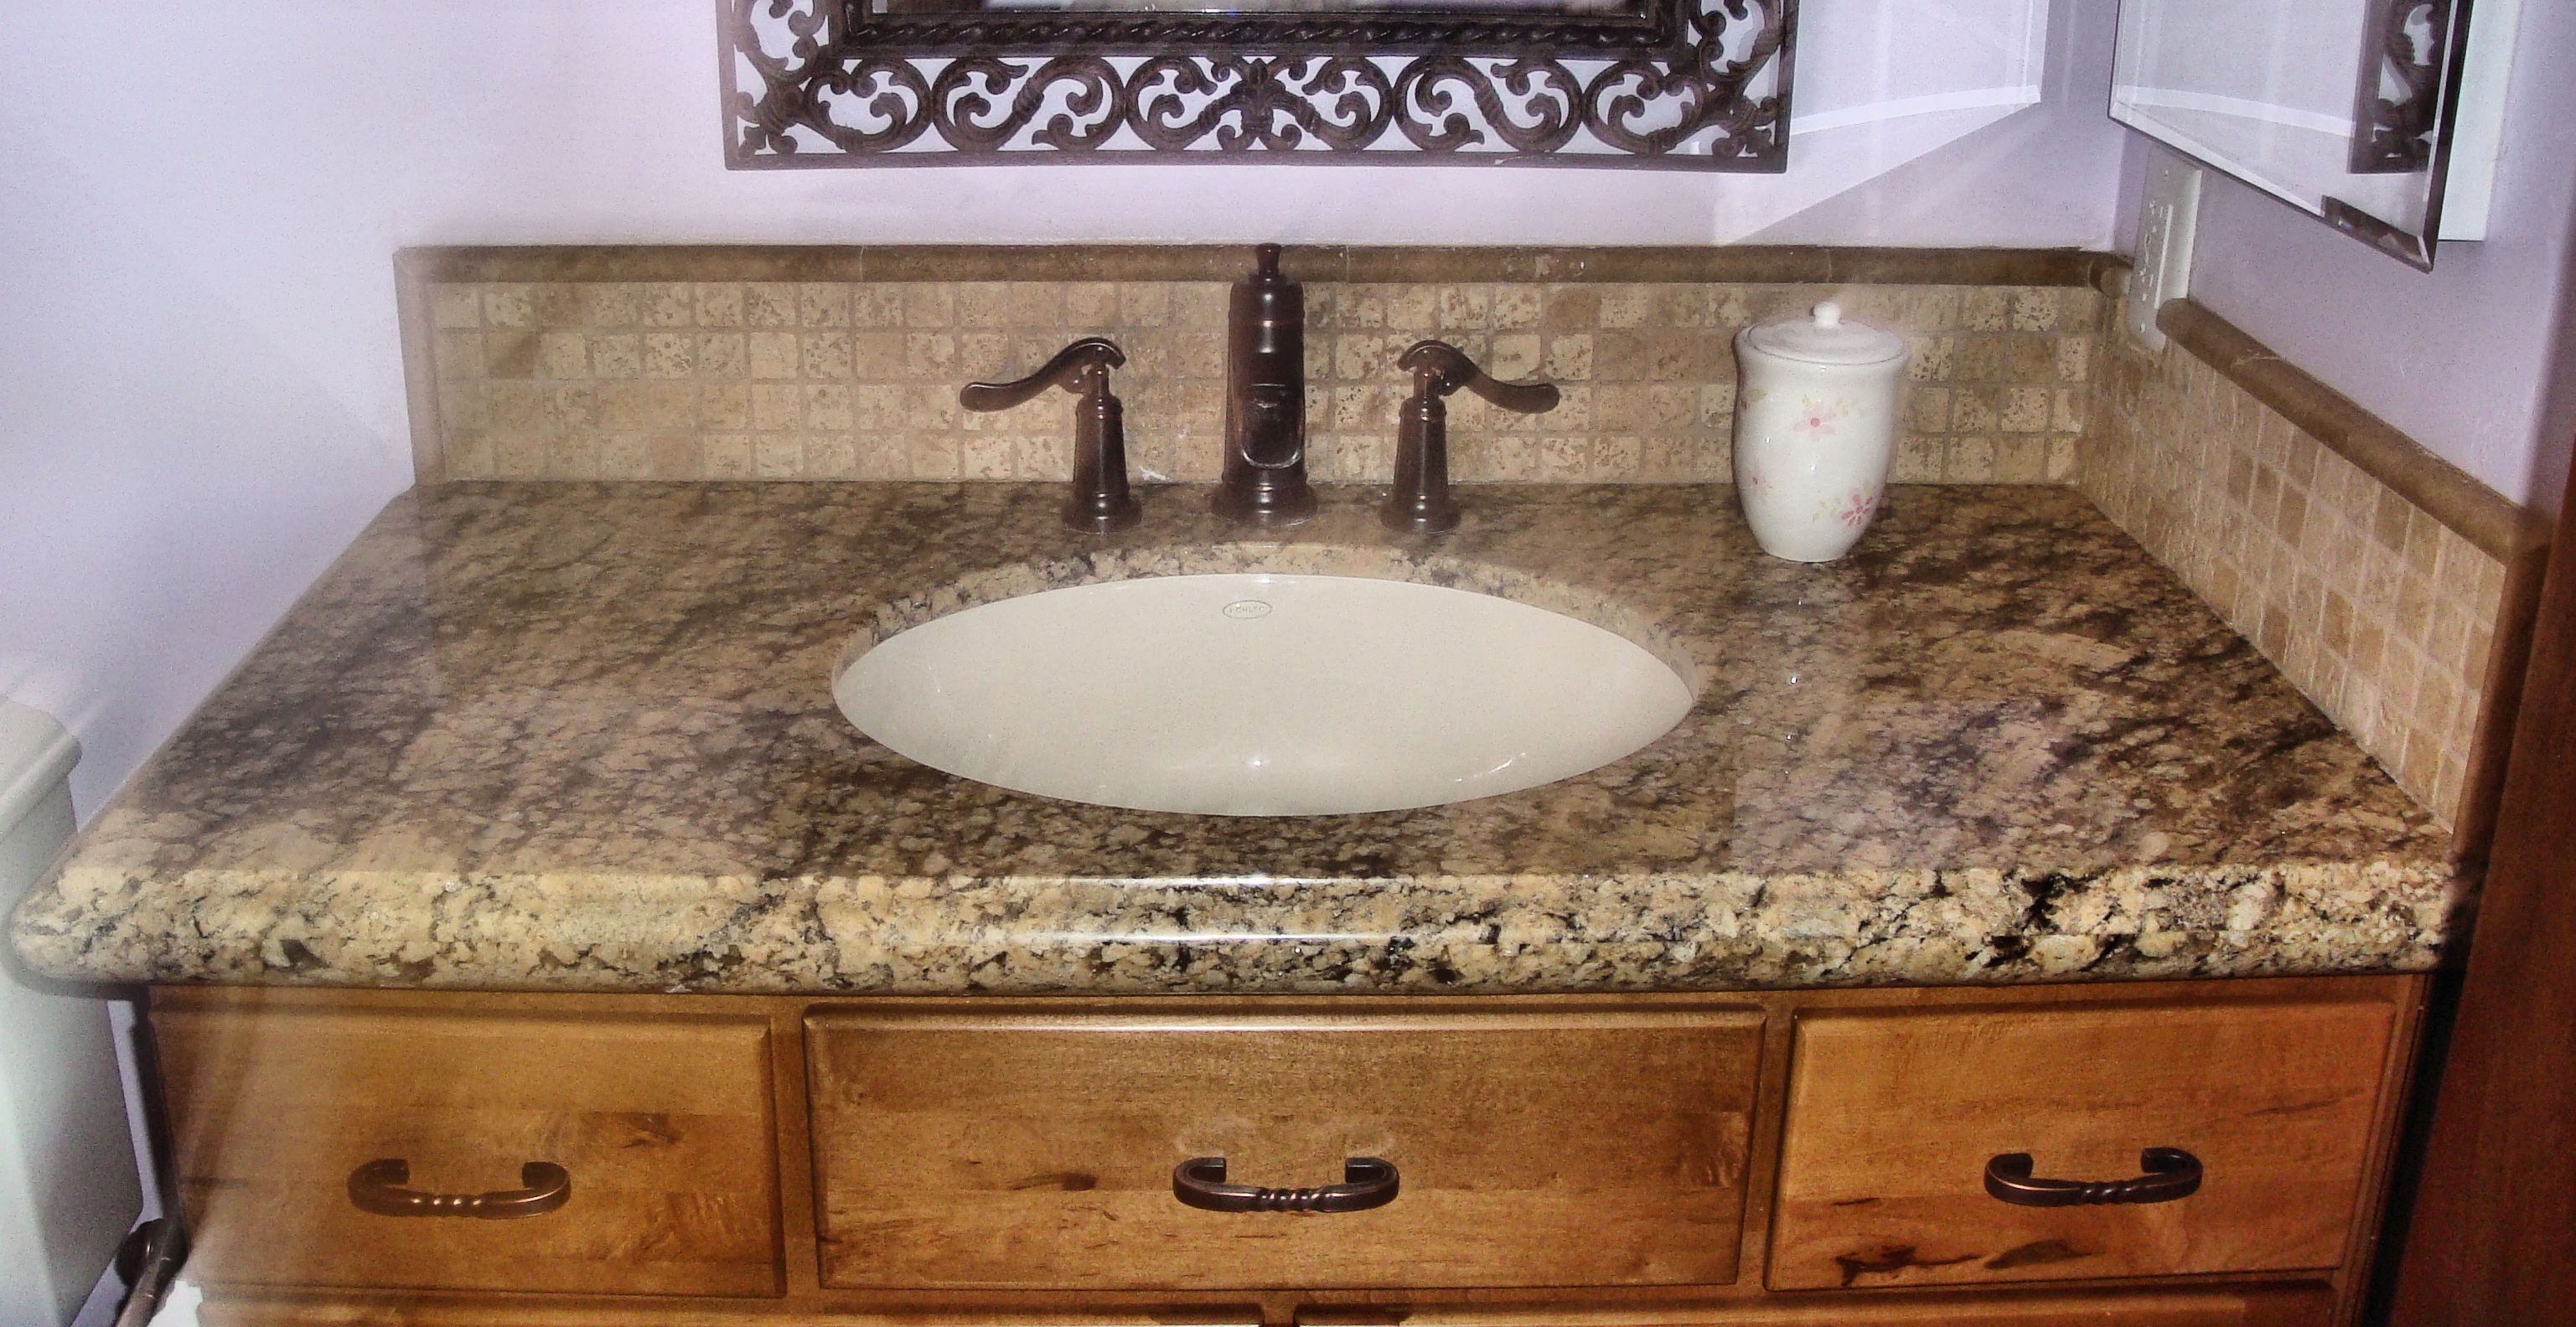 Bathroom Countertops Granite Bathroom Countertops Beige Granite Bathroom Countertop